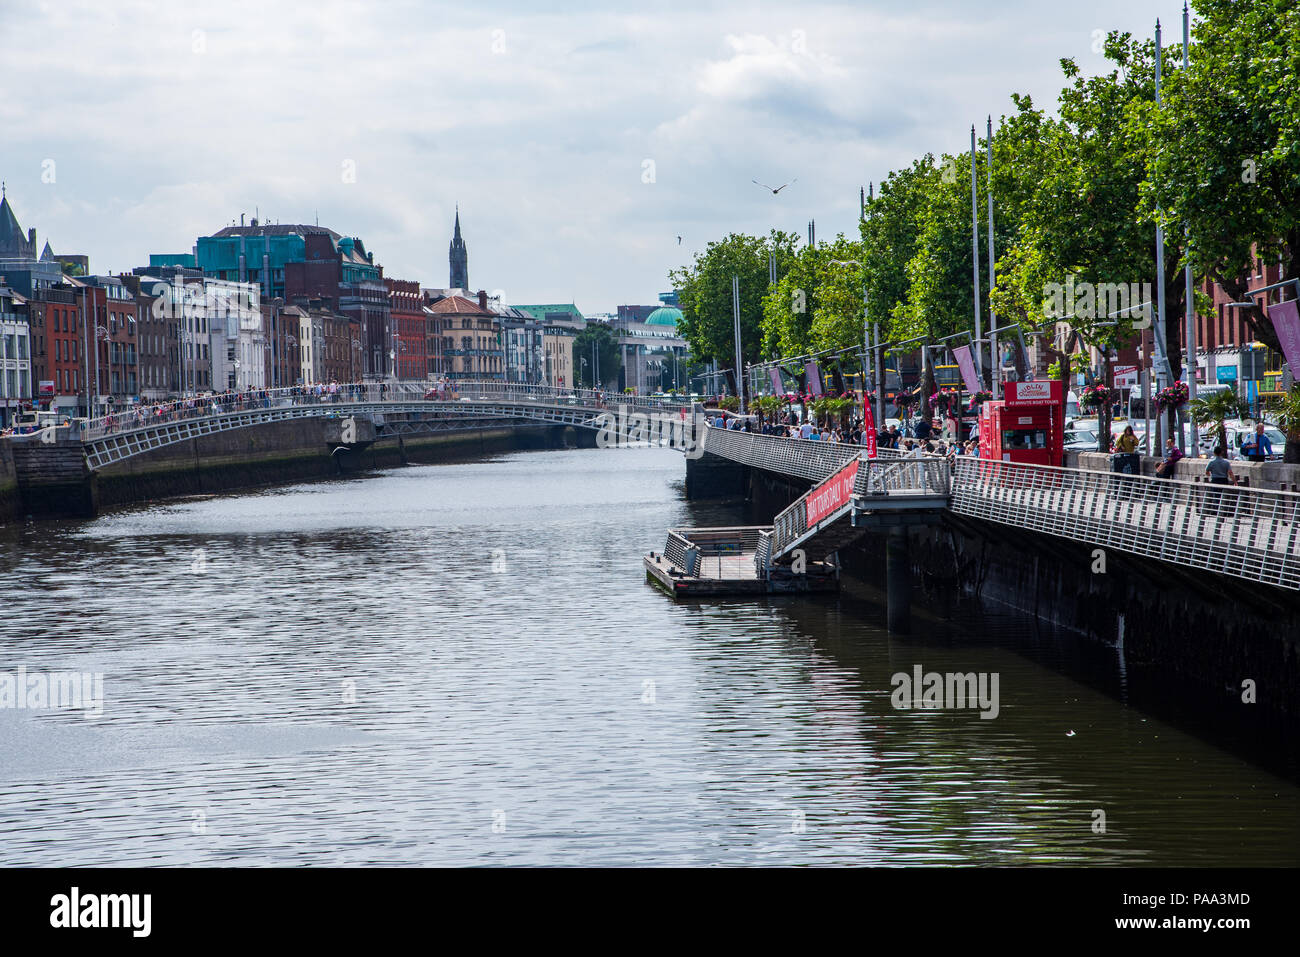 The colorful banks of the River Liffey in Dublin, Ireland - Stock Image